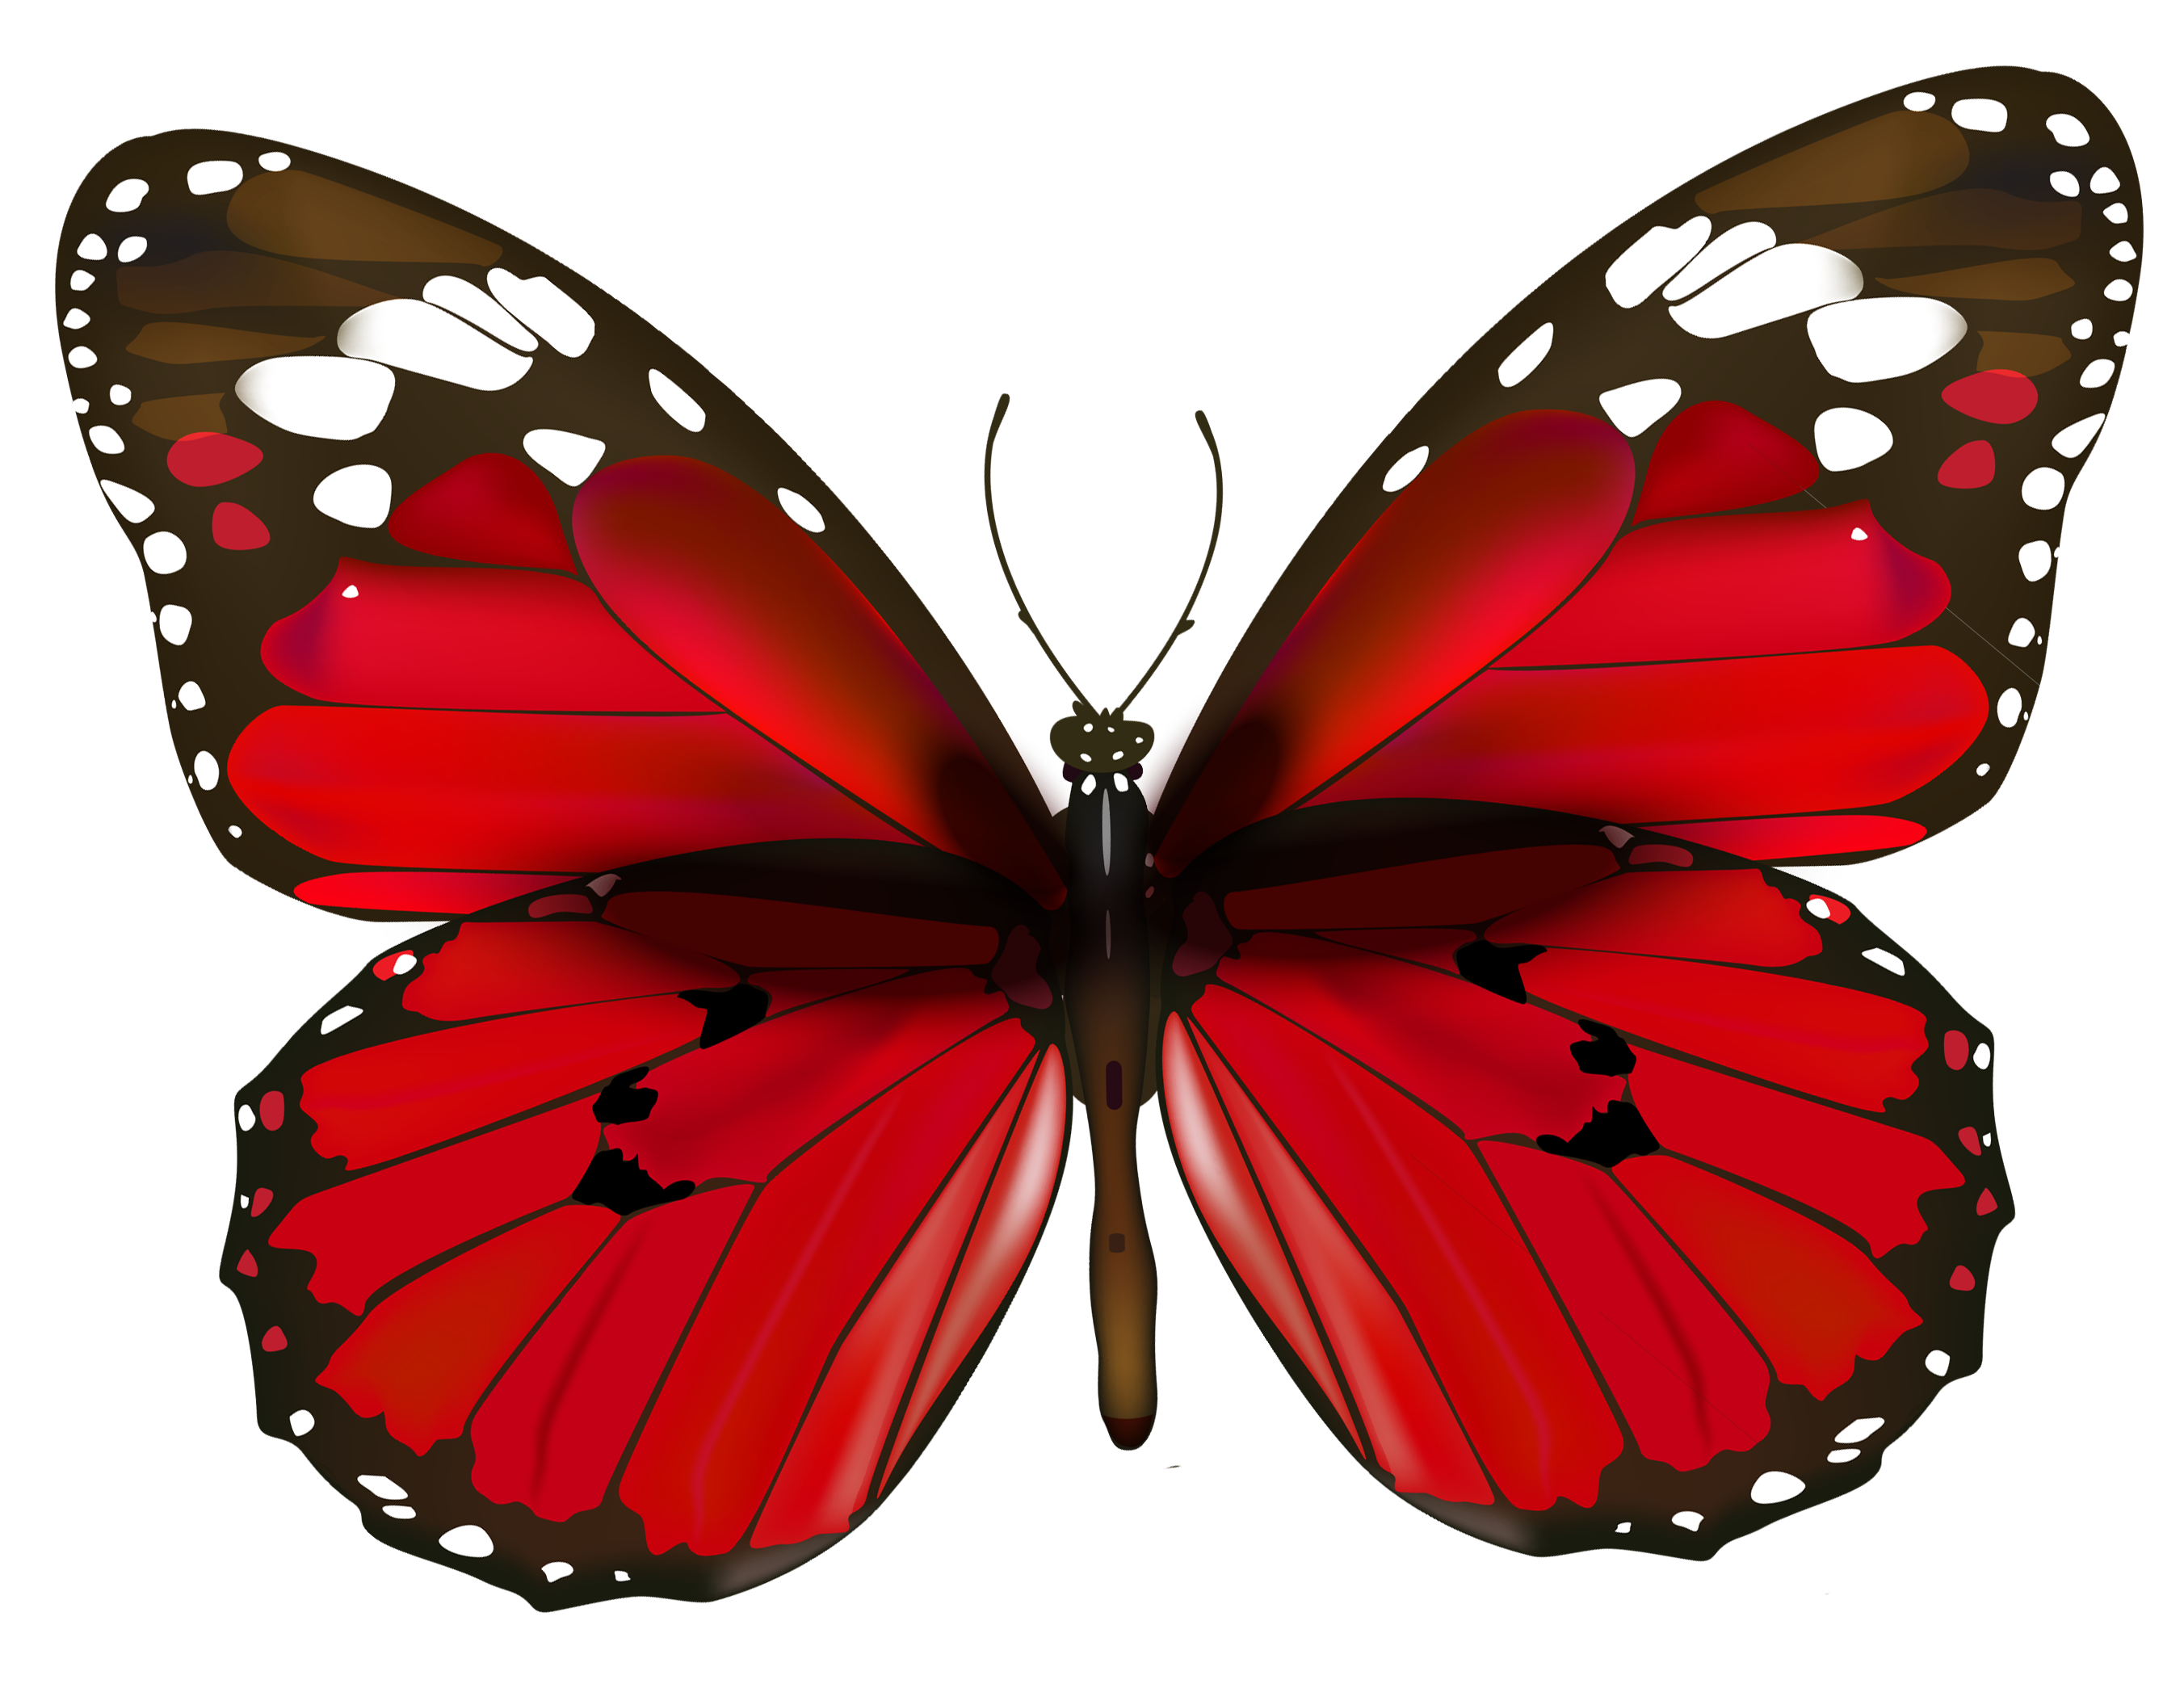 Clipart burgandy butterfly transparent graphic black and white download Free Red Butterfly Cliparts, Download Free Clip Art, Free Clip Art ... graphic black and white download